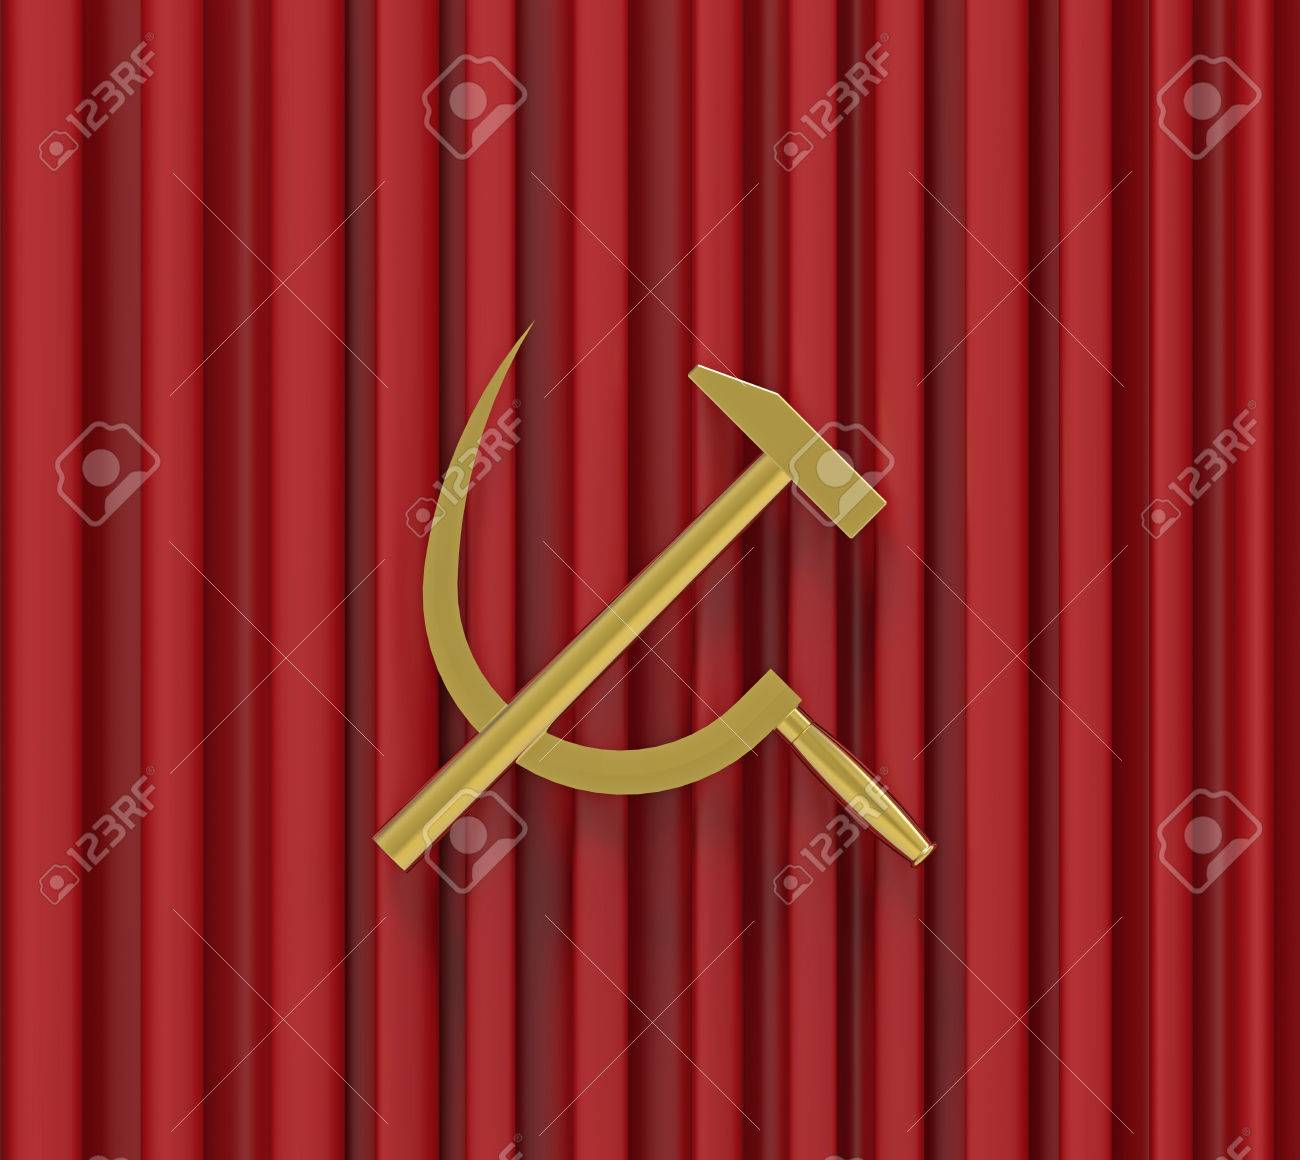 Hammer and sickle communist symbol 3d render stock photo hammer and sickle communist symbol 3d render stock photo 80206127 biocorpaavc Gallery